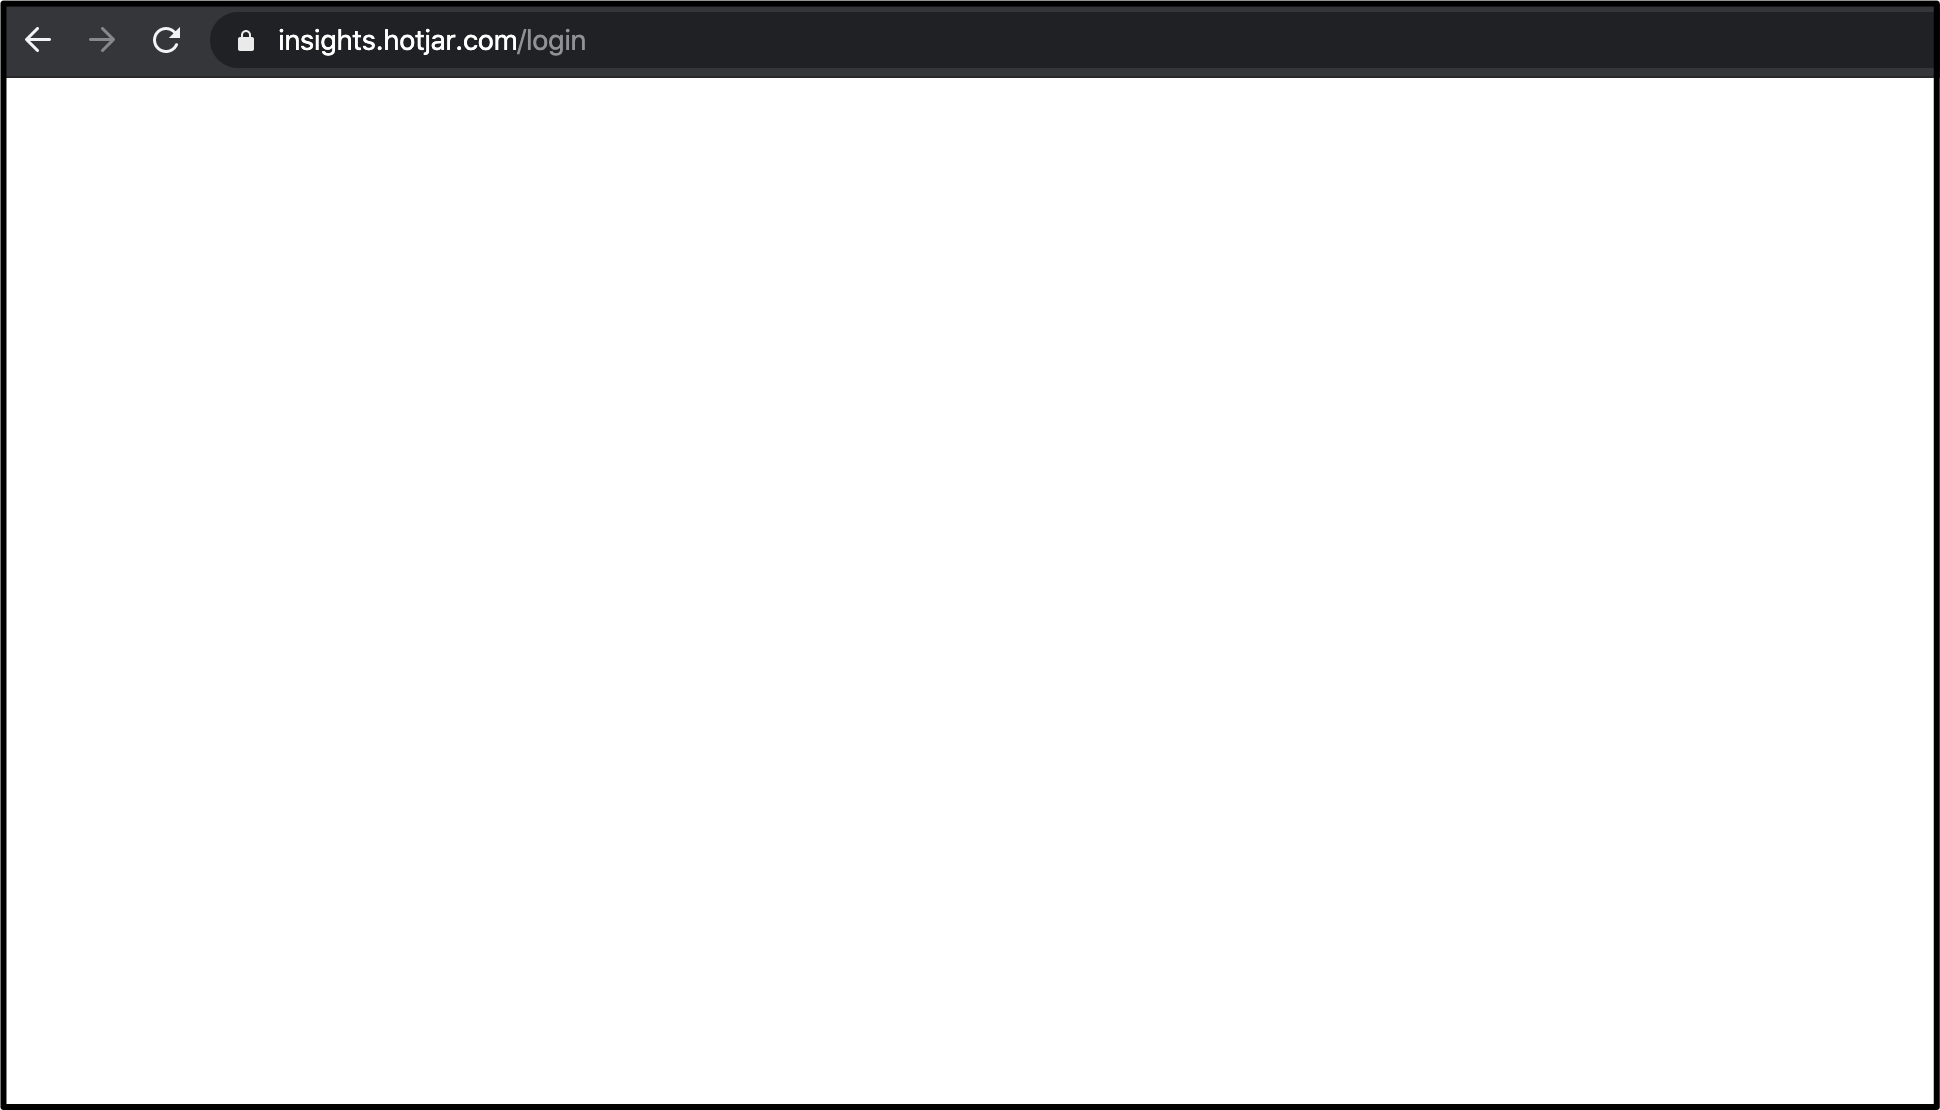 Example of a blank page after log in